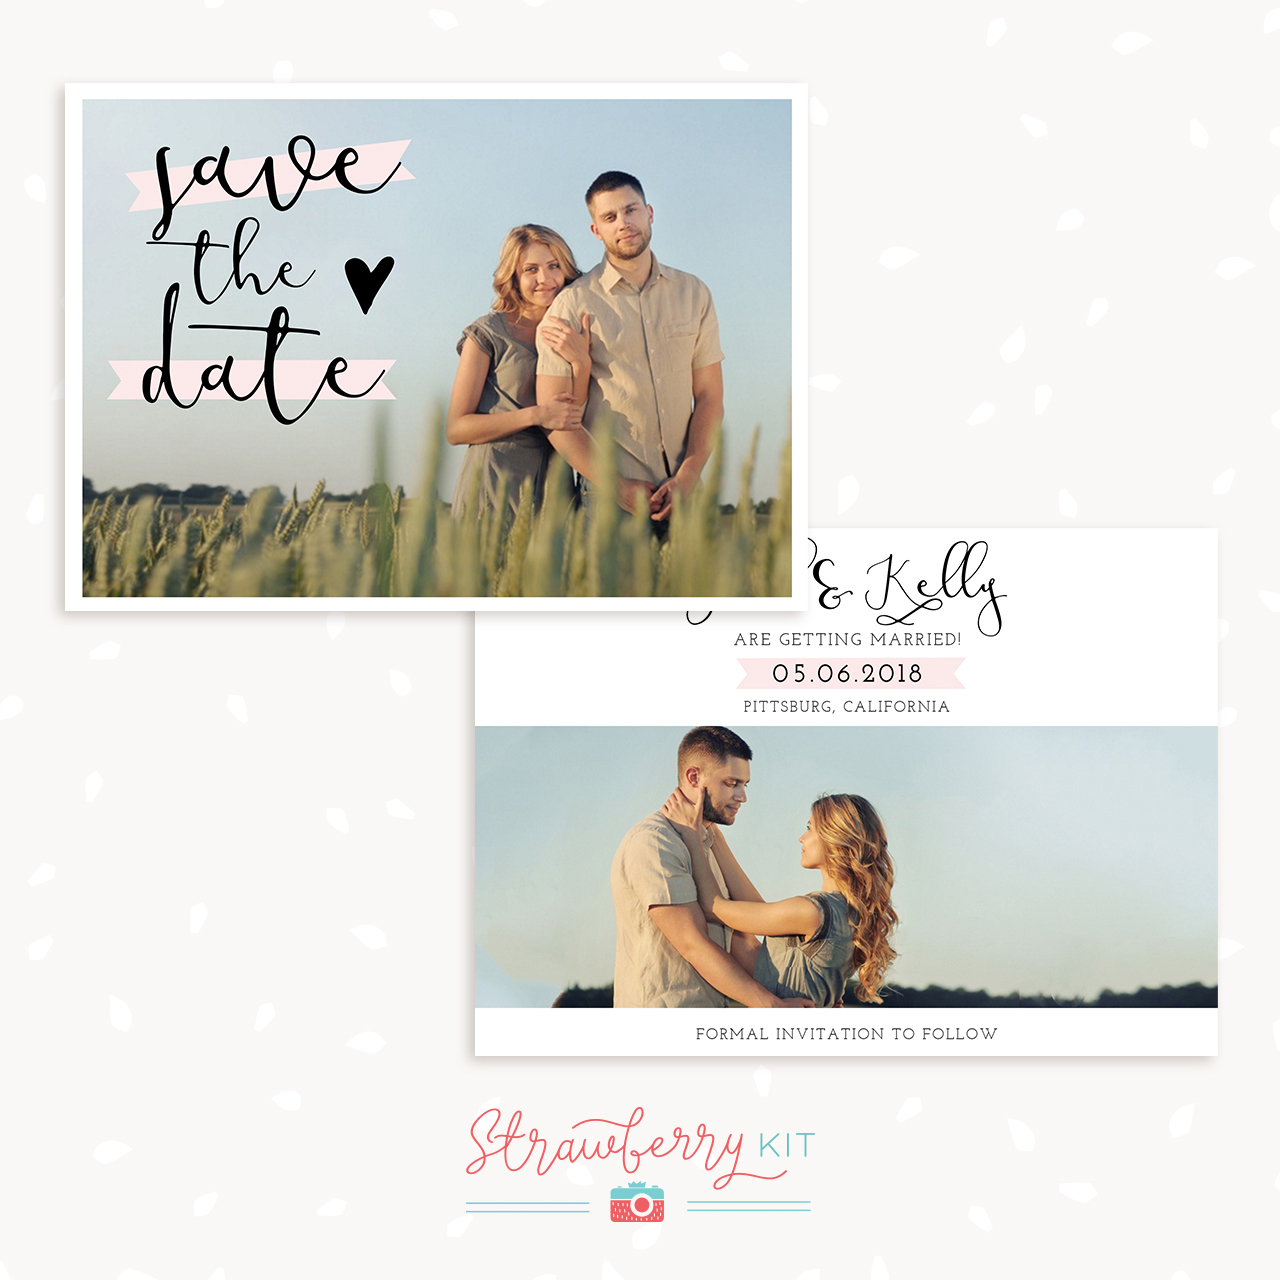 Classic Save the Date card template